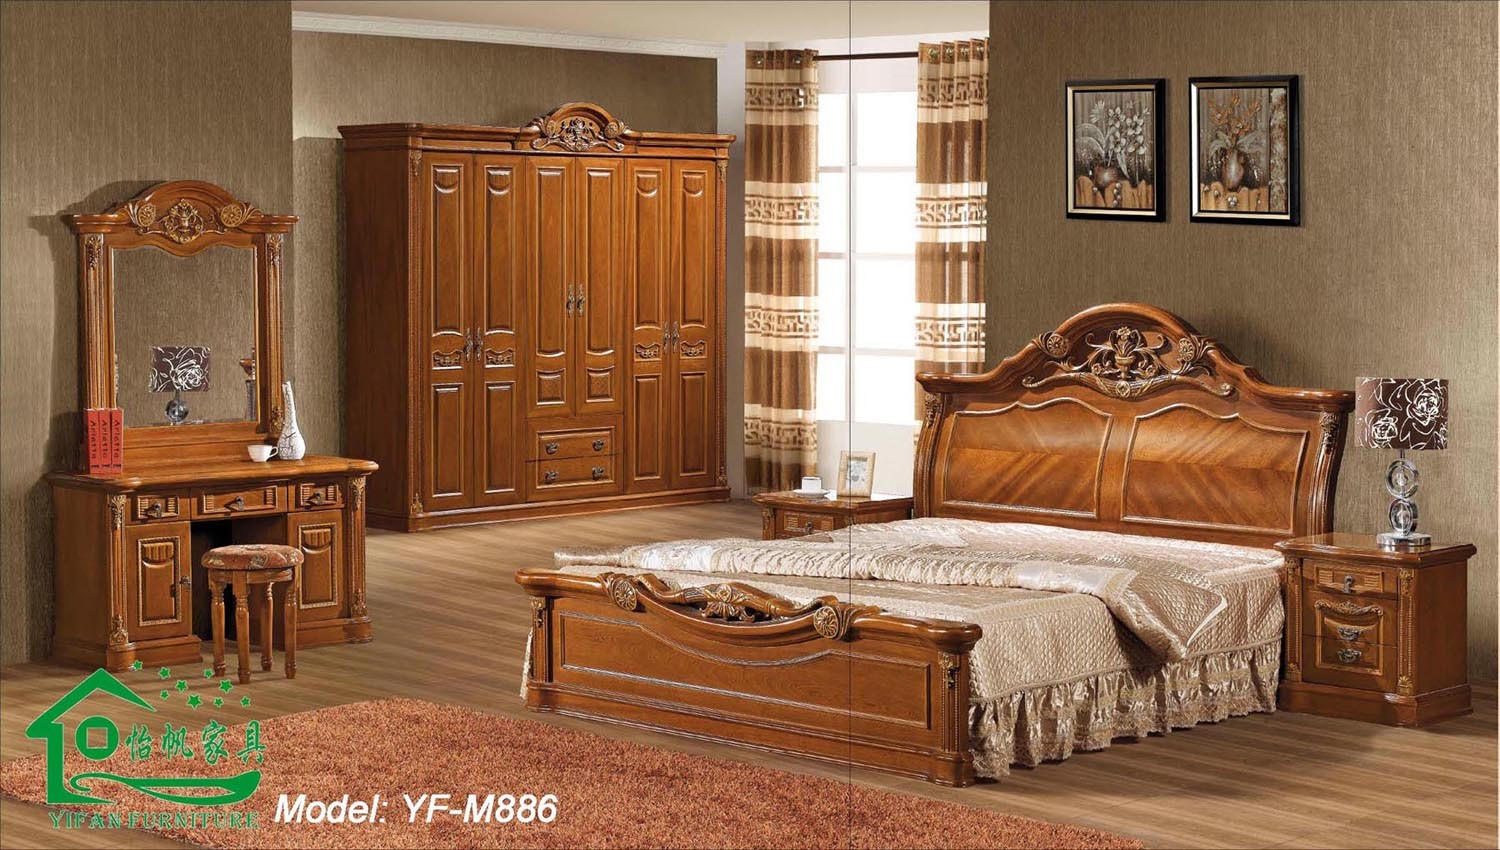 Bedroom Furniture 2013 recommended decorating ideas for wood furniture ‹ woodensigns